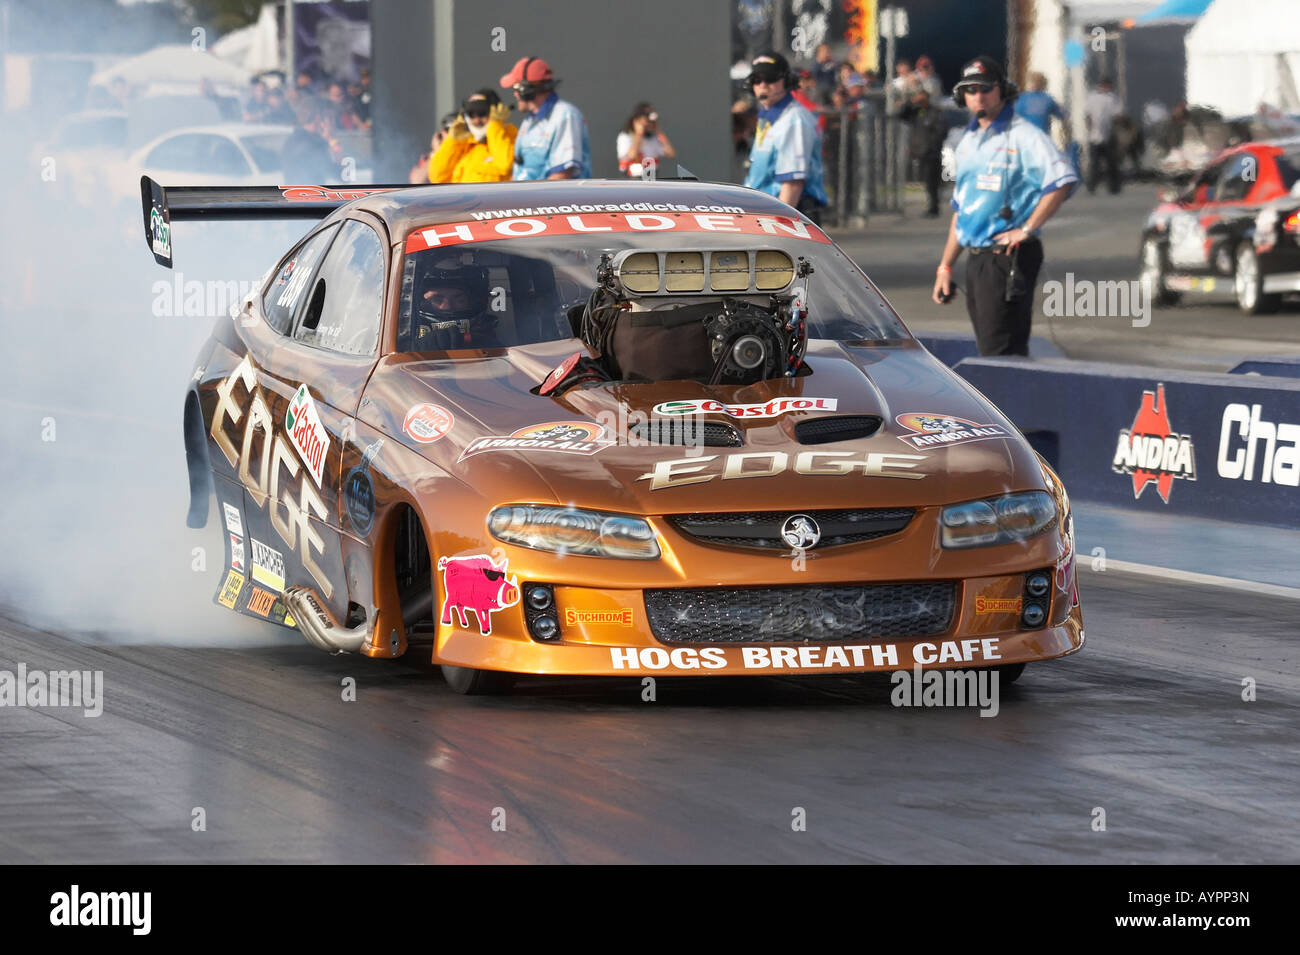 Ben Bray, leading Australian Top Doorslammer driver, performs a pre race burnout to warm the tyres Stock Photo